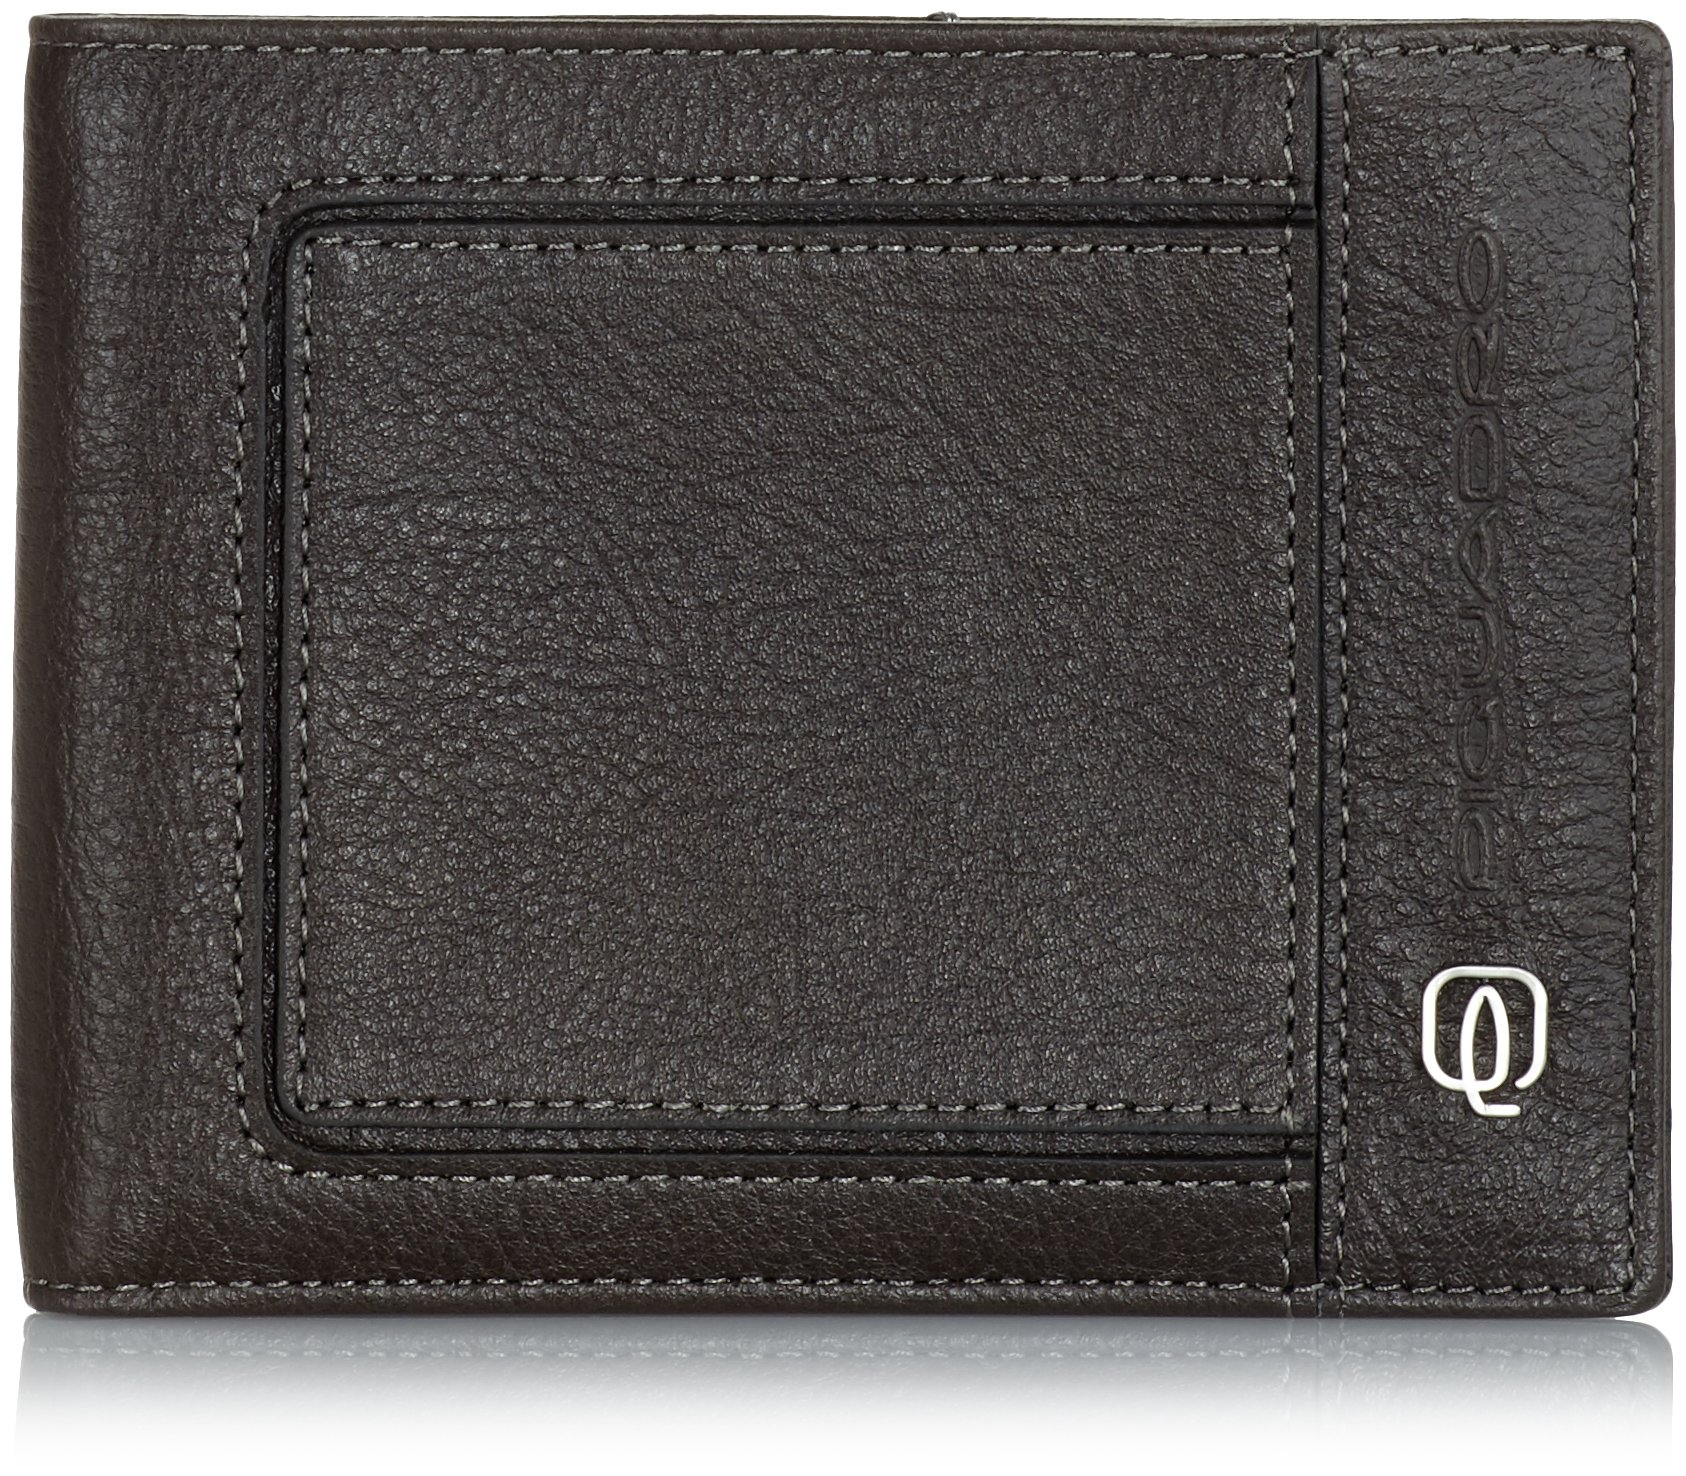 Piquadro Men's Leather Wallet with 12 Credit Card Slots, Grey/Taupe, One Size